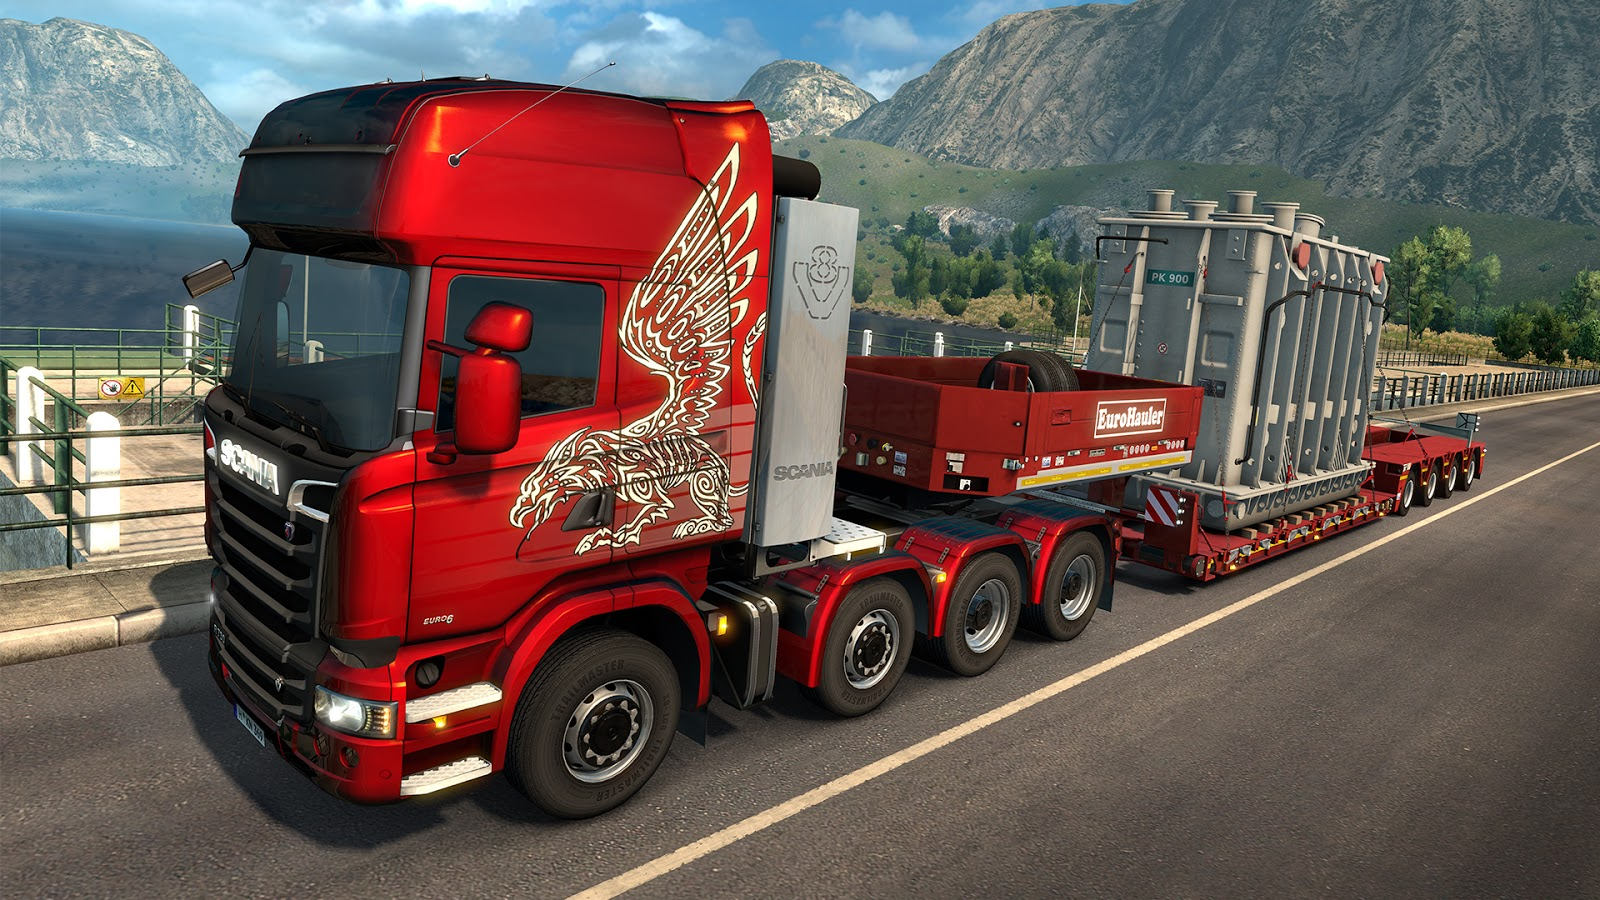 Ets 2 1.4.8 Crack Download